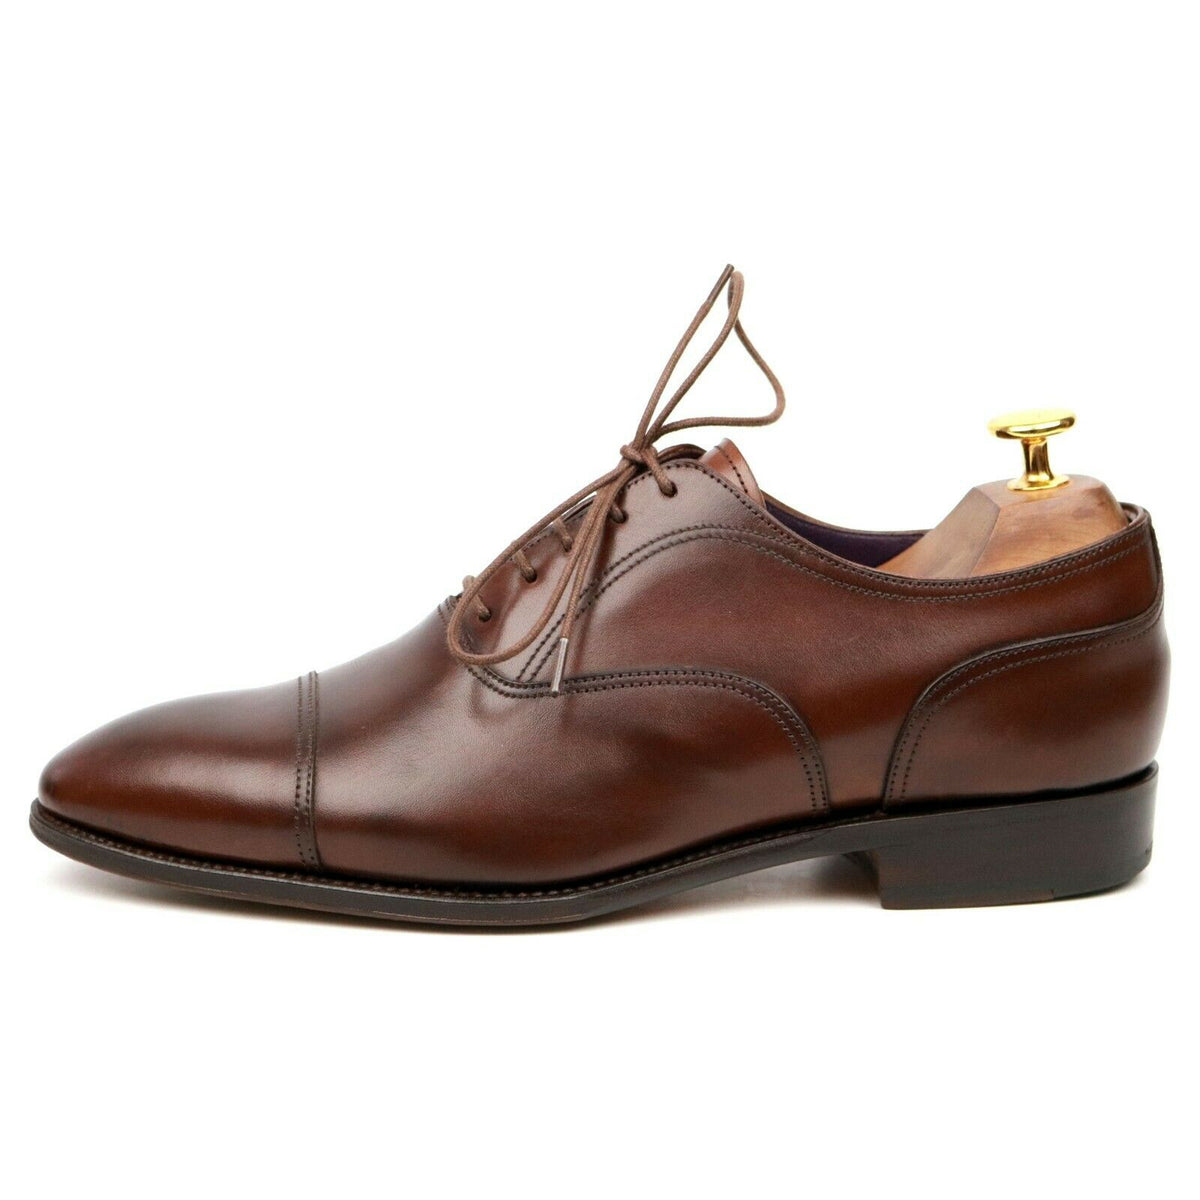 Carmina 80267 Rain Brown Leather Oxford UK 6.5 EE